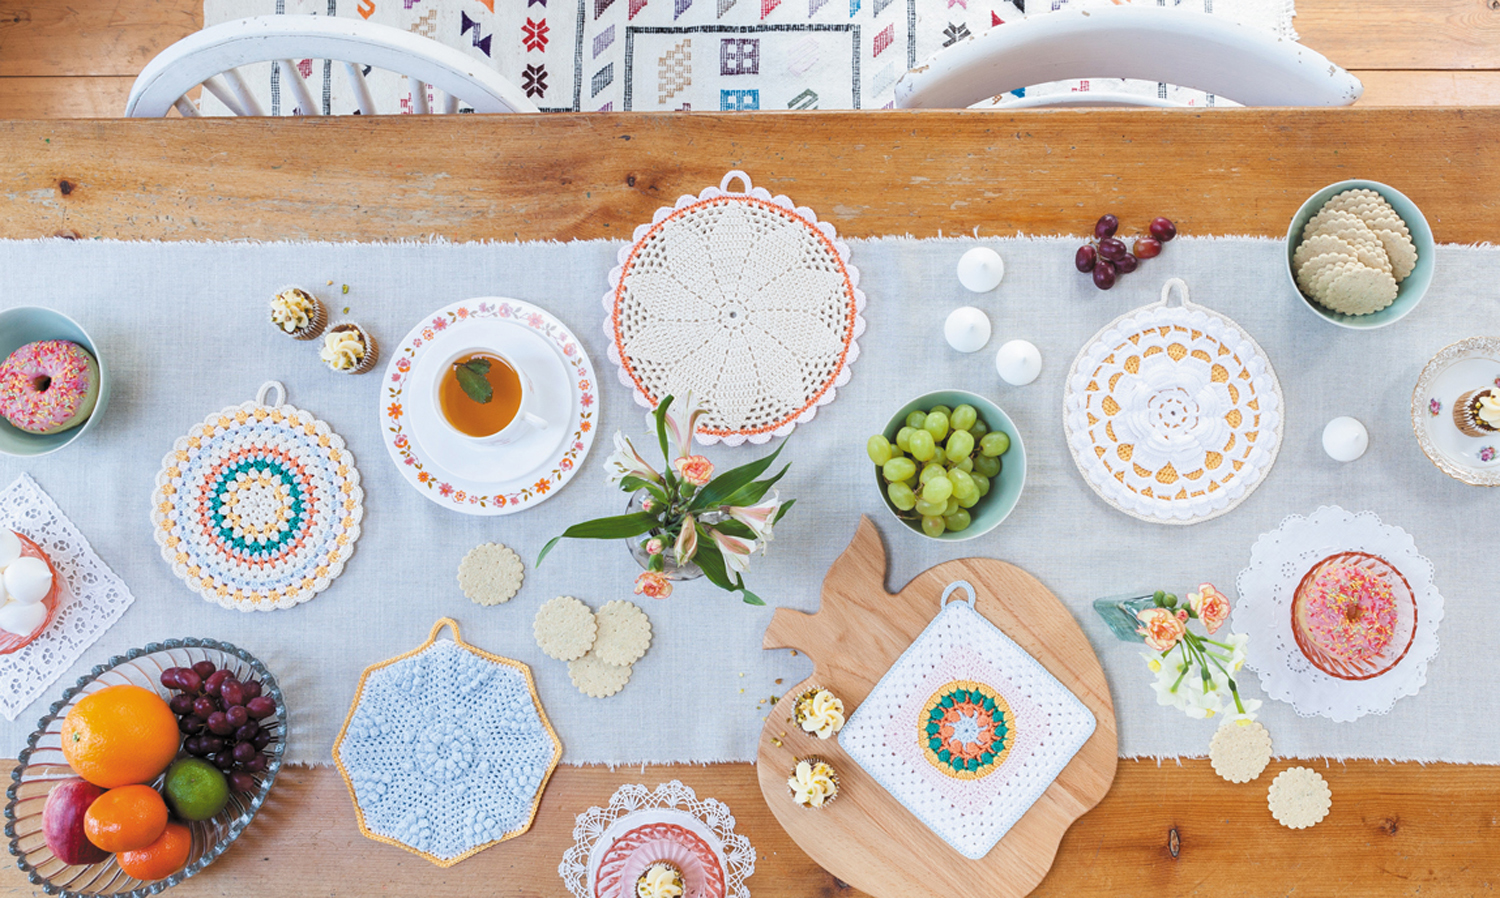 Potholders from Crochet Home by Emma Lamb | Crochet designs and styling by Emma Lamb / Photography by Jason M Jenkins